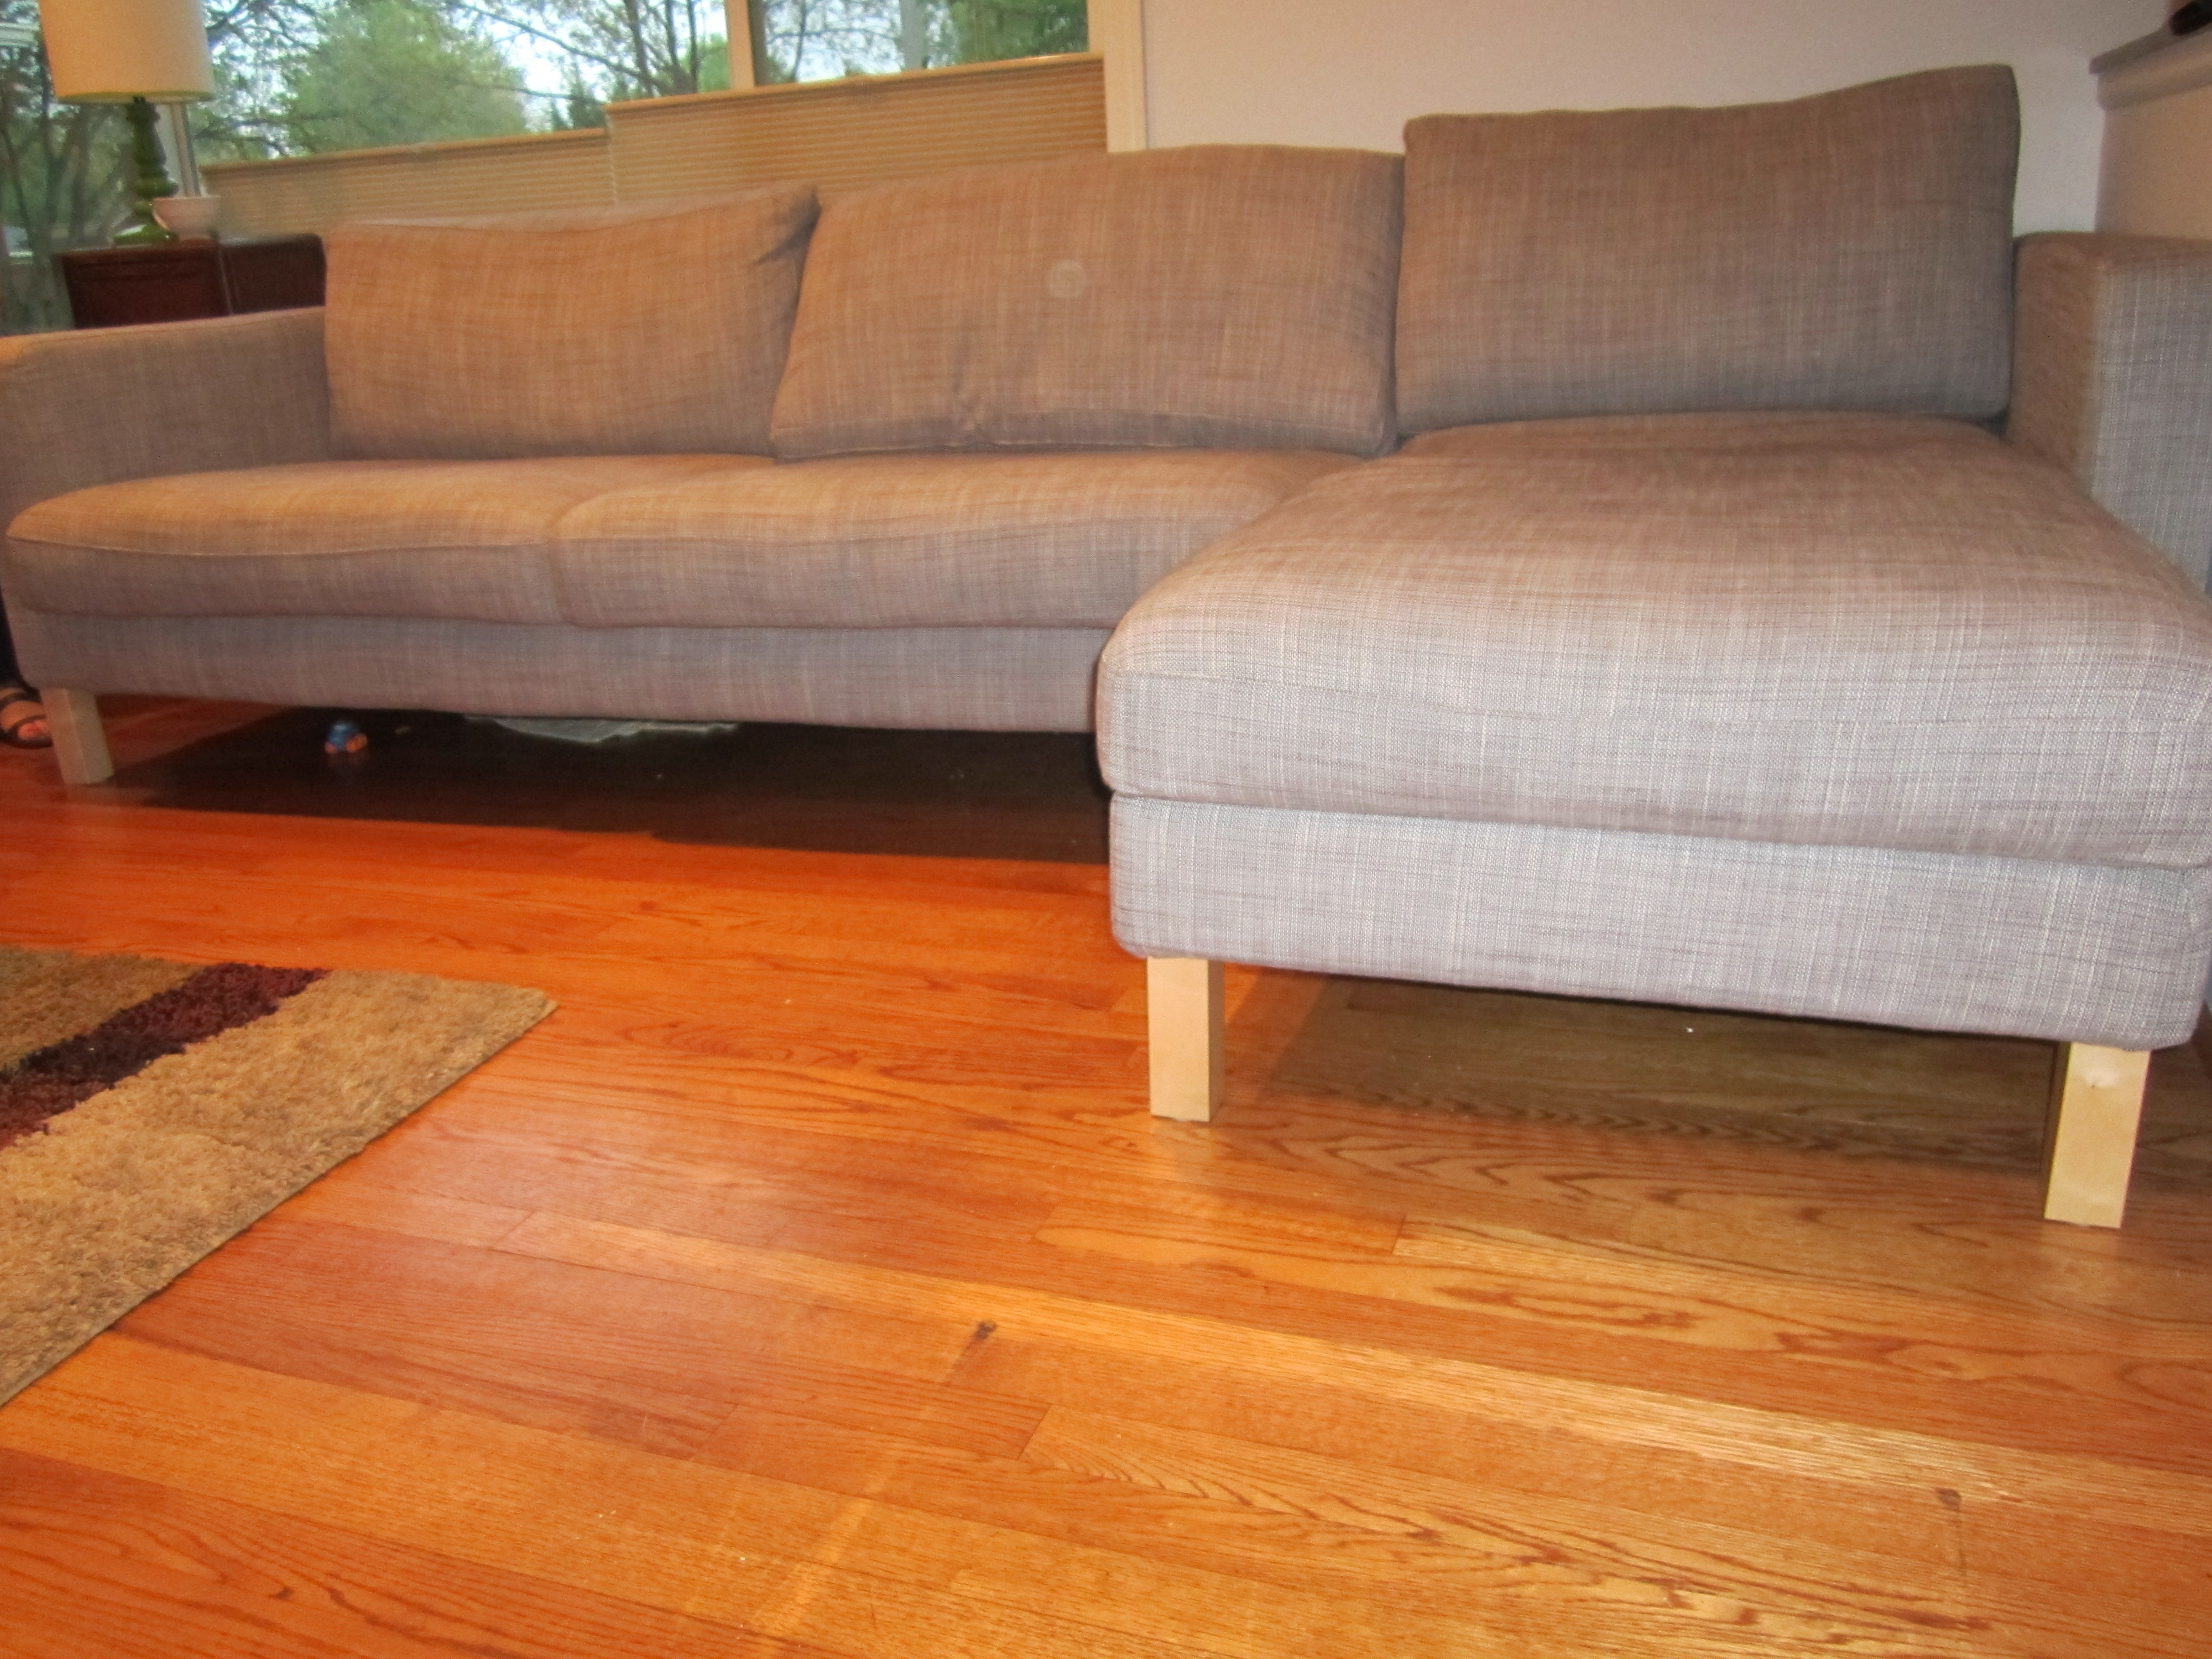 Most Popular Ikea Karlstad Couch Hack – My Mid Century Modest Ranch Make Over For Ikea Karlstad Chaises (View 10 of 15)